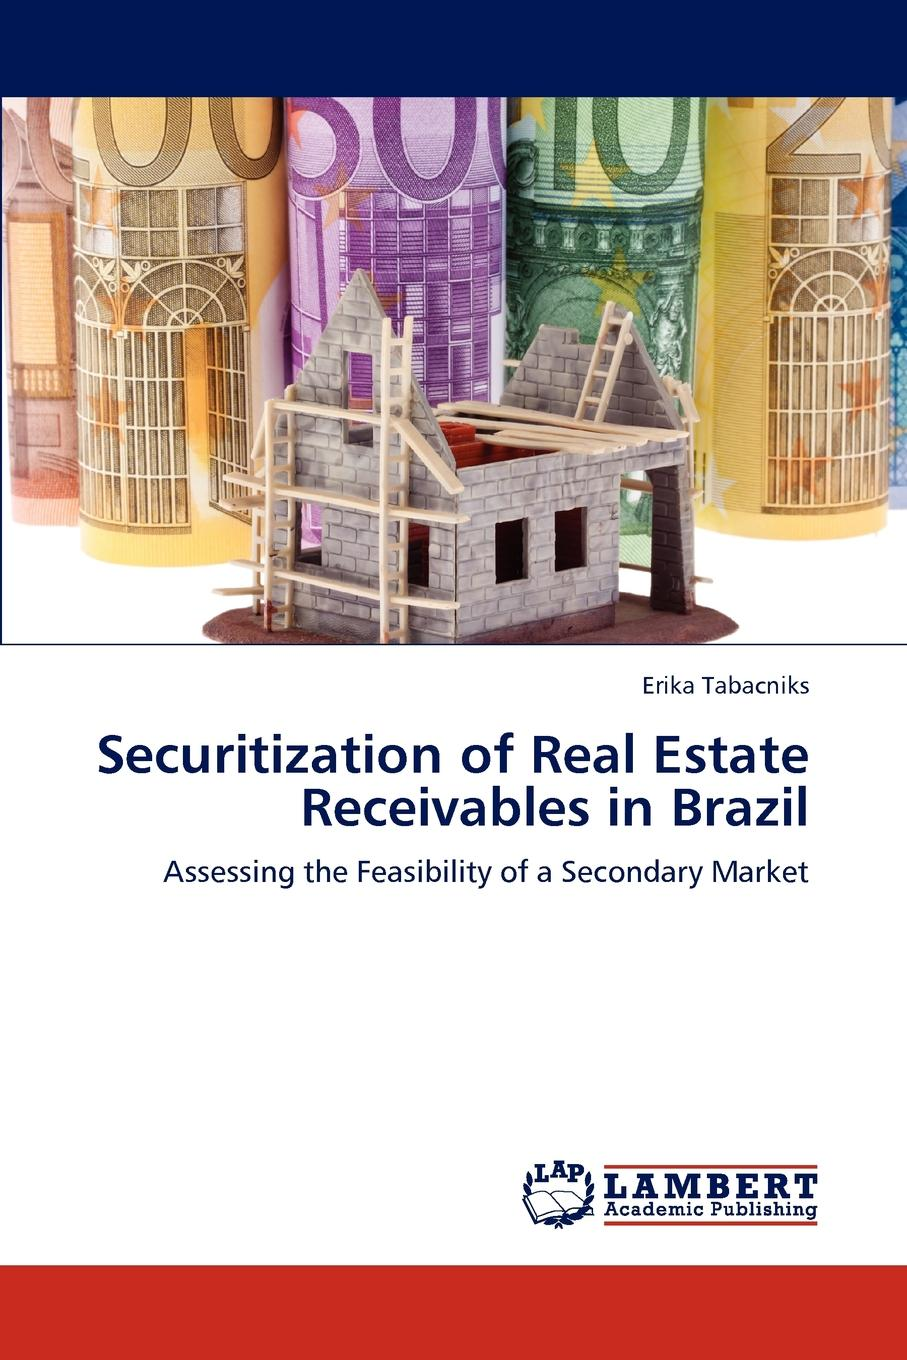 Erika Tabacniks Securitization of Real Estate Receivables in Brazil профессиональный усилитель мощности crown xli 1500